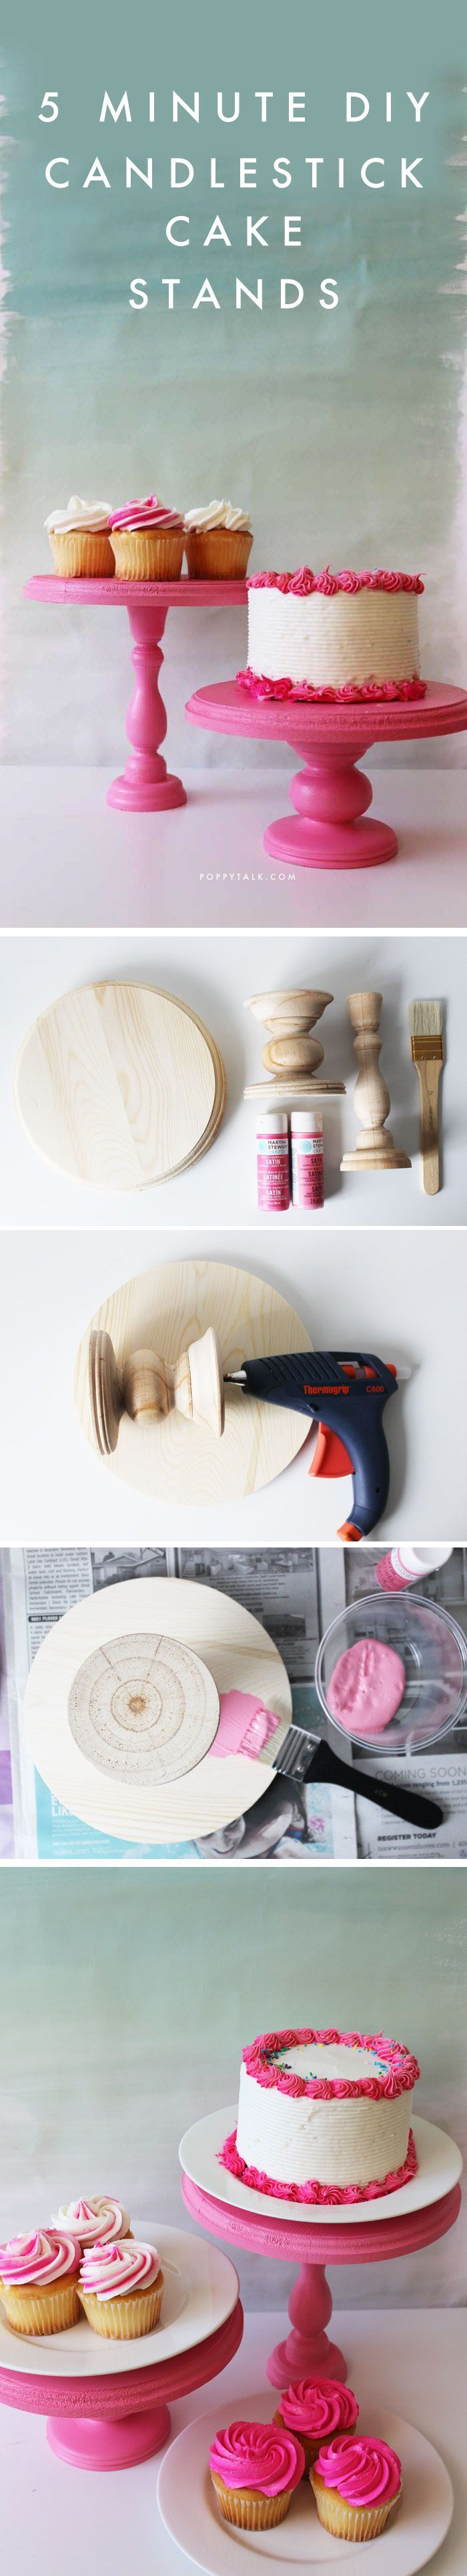 5 Minute DIY using wooden candlesticks, a round plaque and a glue gun! So easy and under $20.